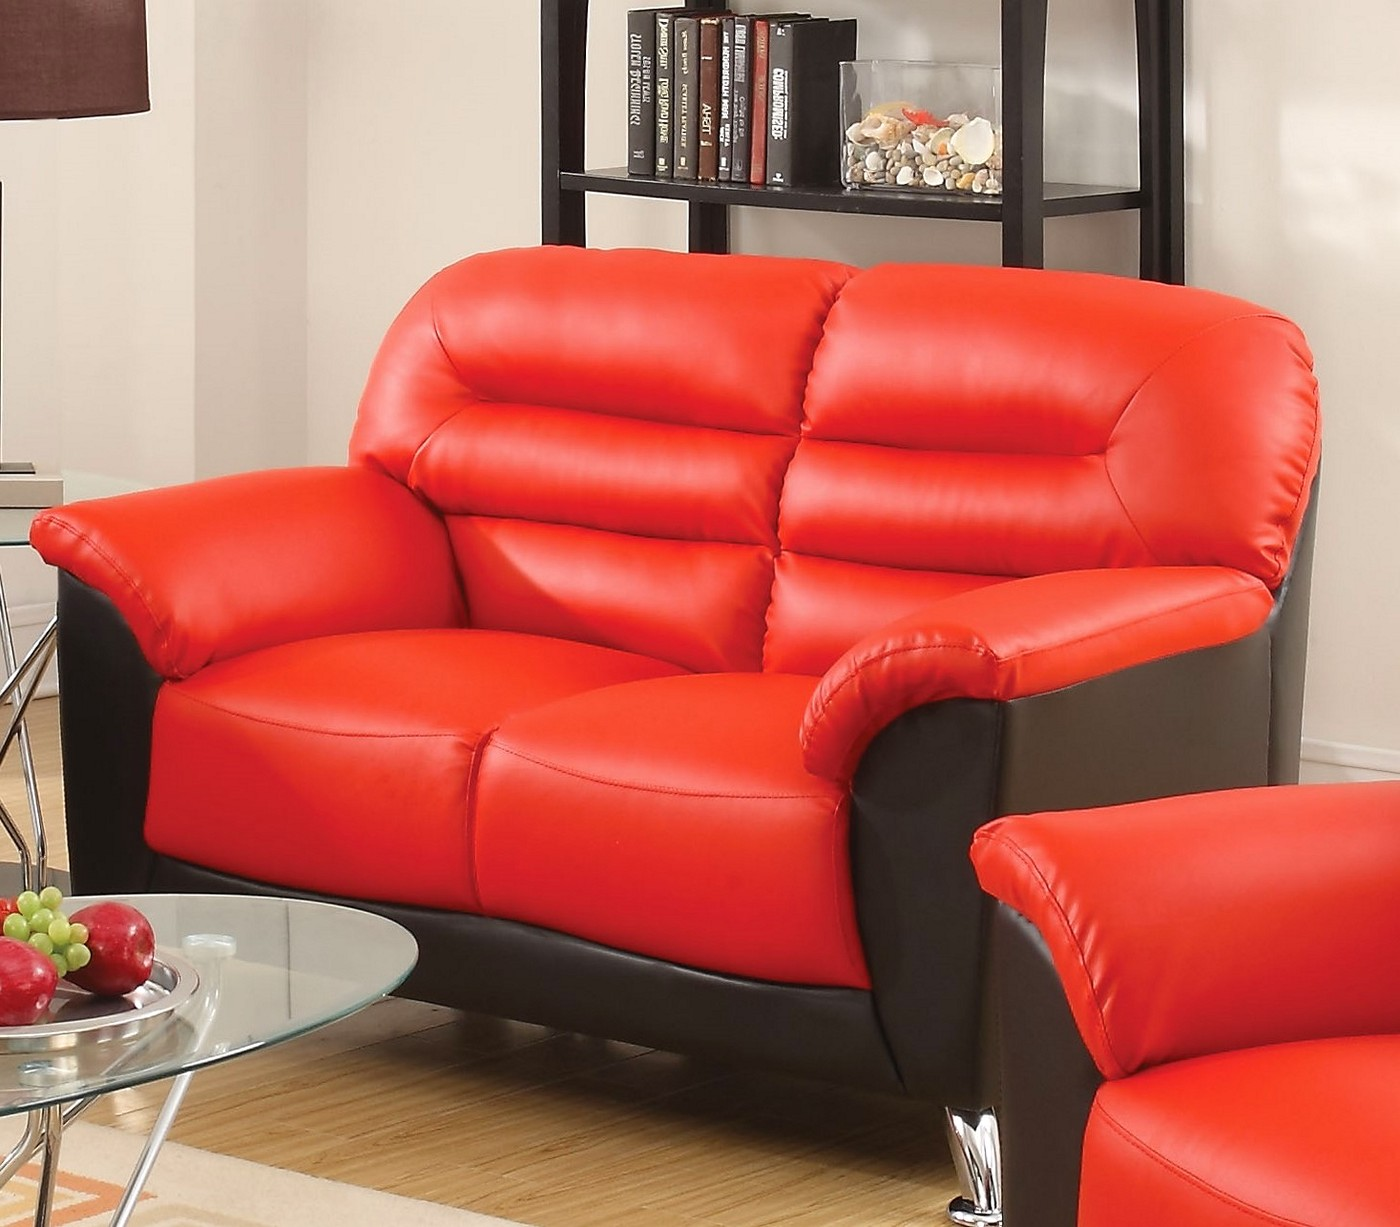 Asmund Modern Black & Red Faux Leather Sofa & Loveseat